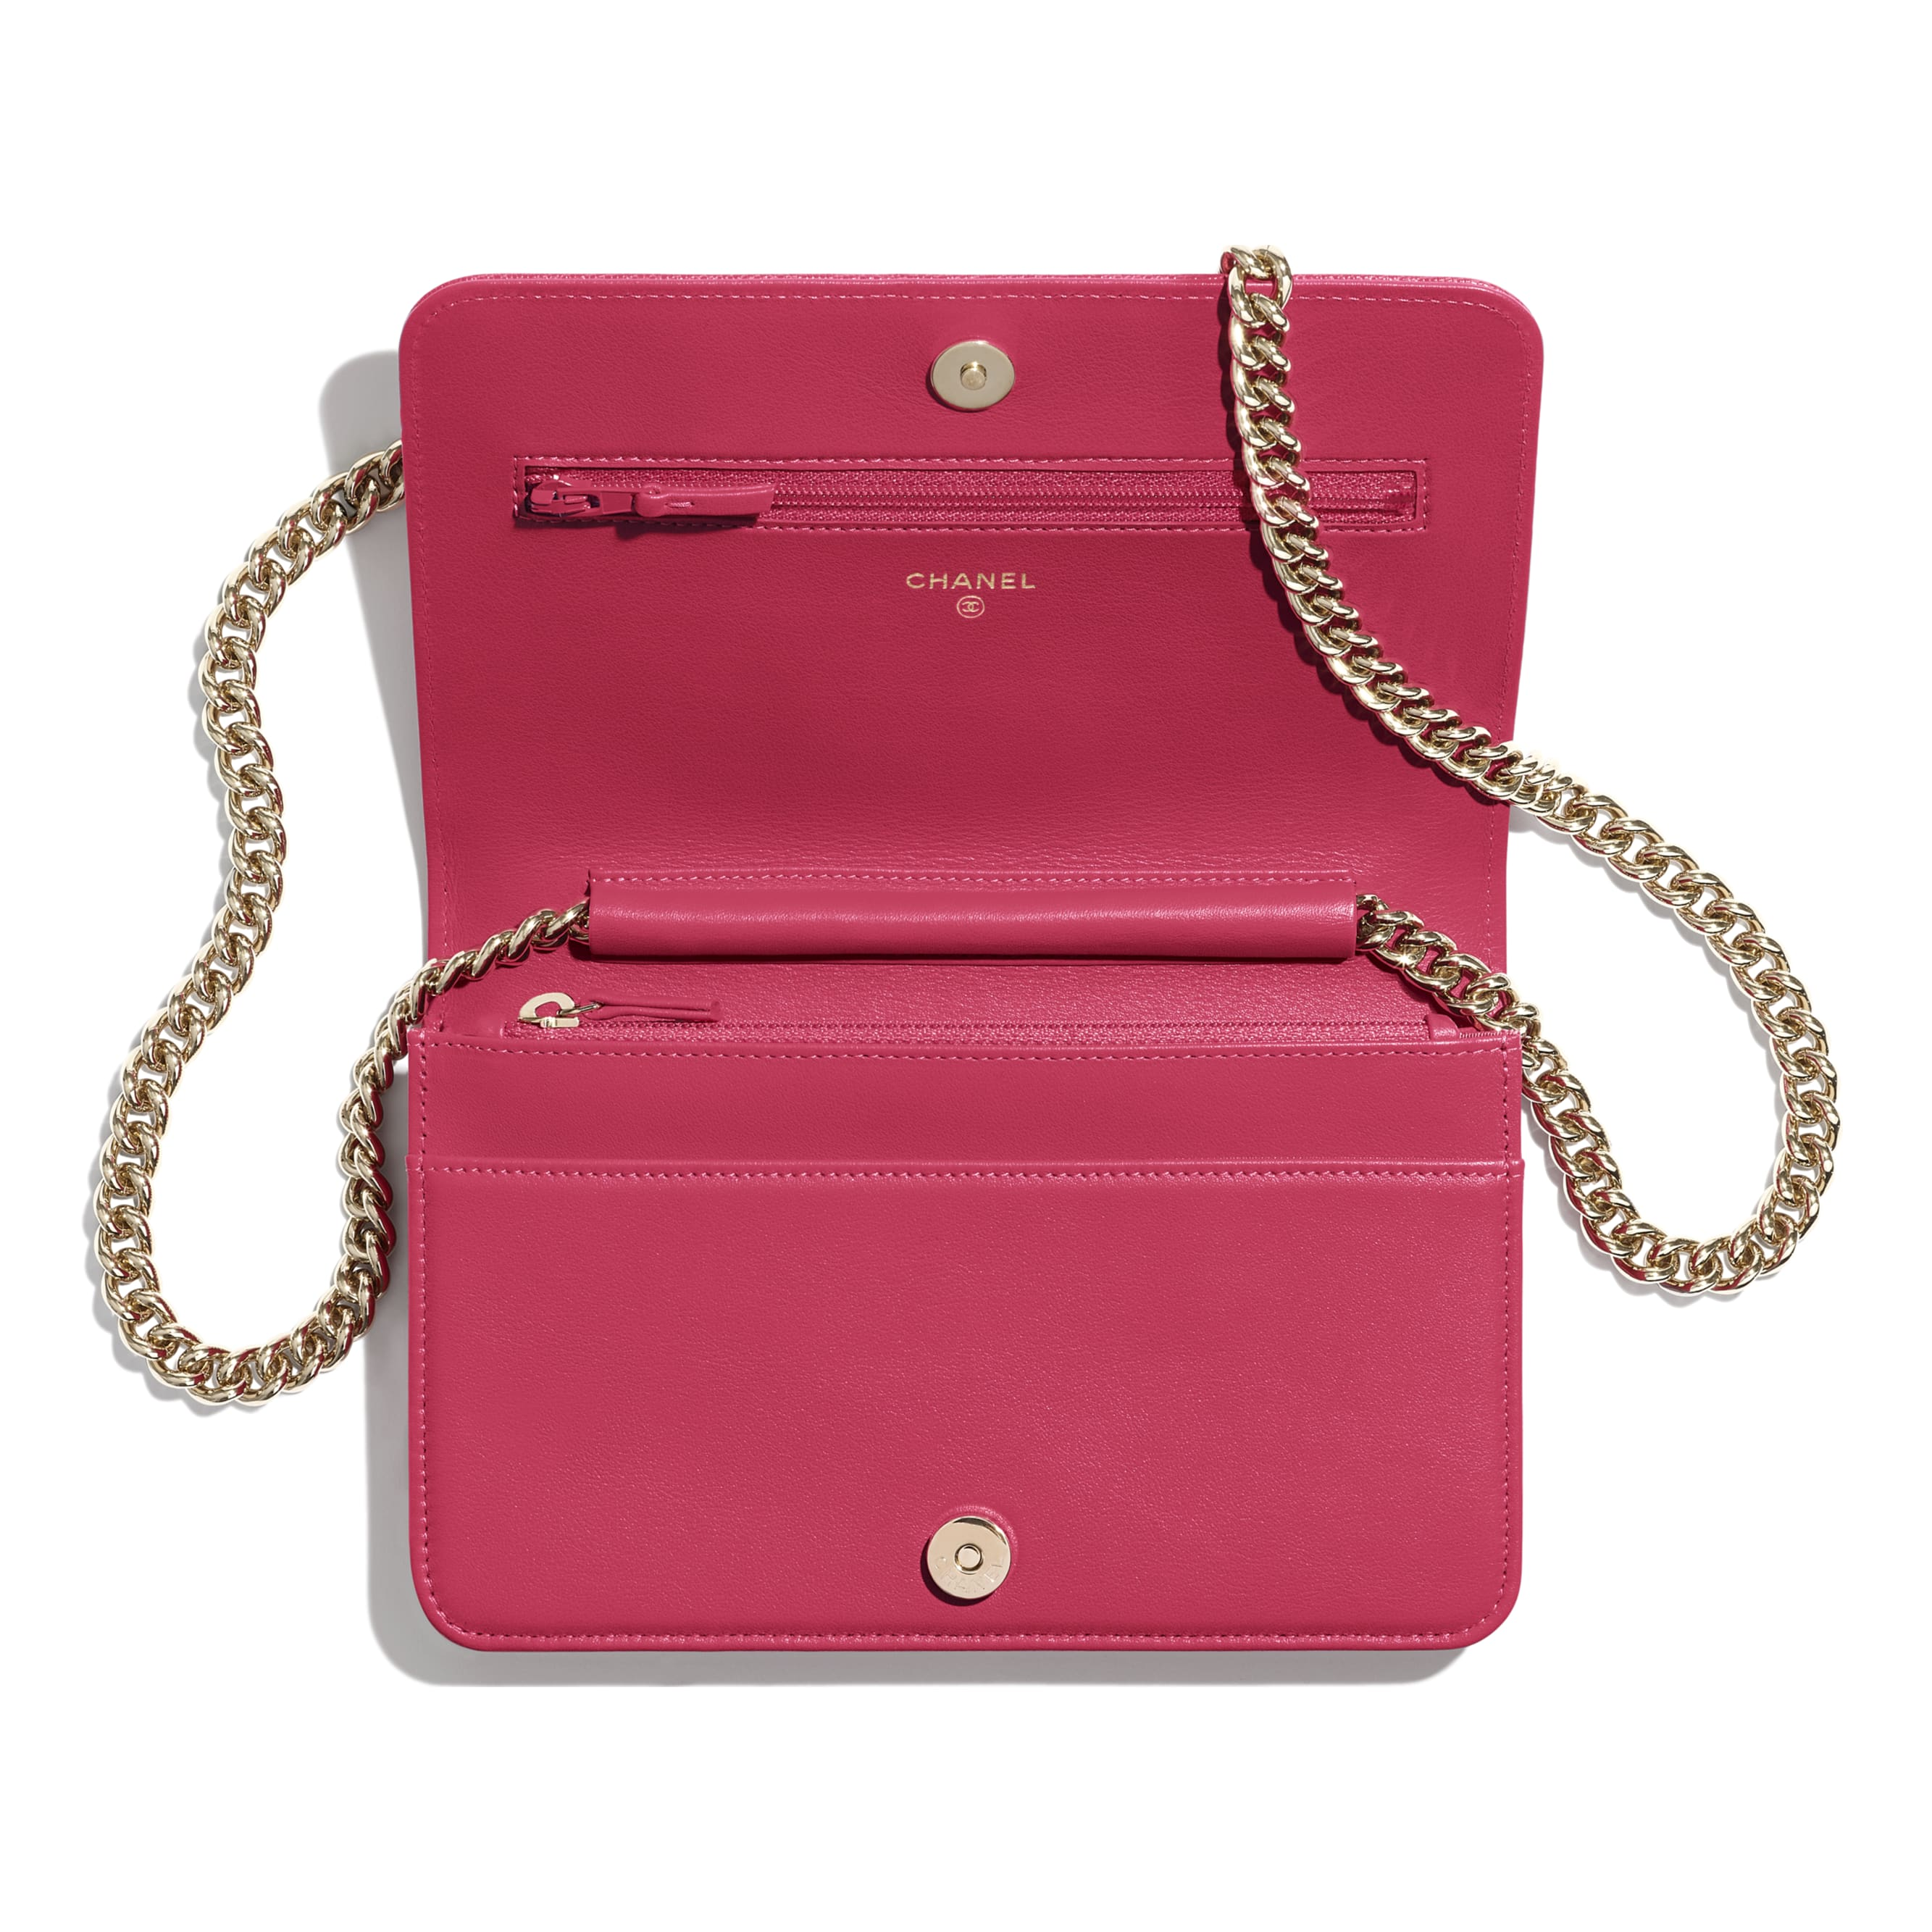 BOY CHANEL Wallet On Chain - Pink - Grained Calfskin & Gold-Tone Metal - CHANEL - Other view - see standard sized version